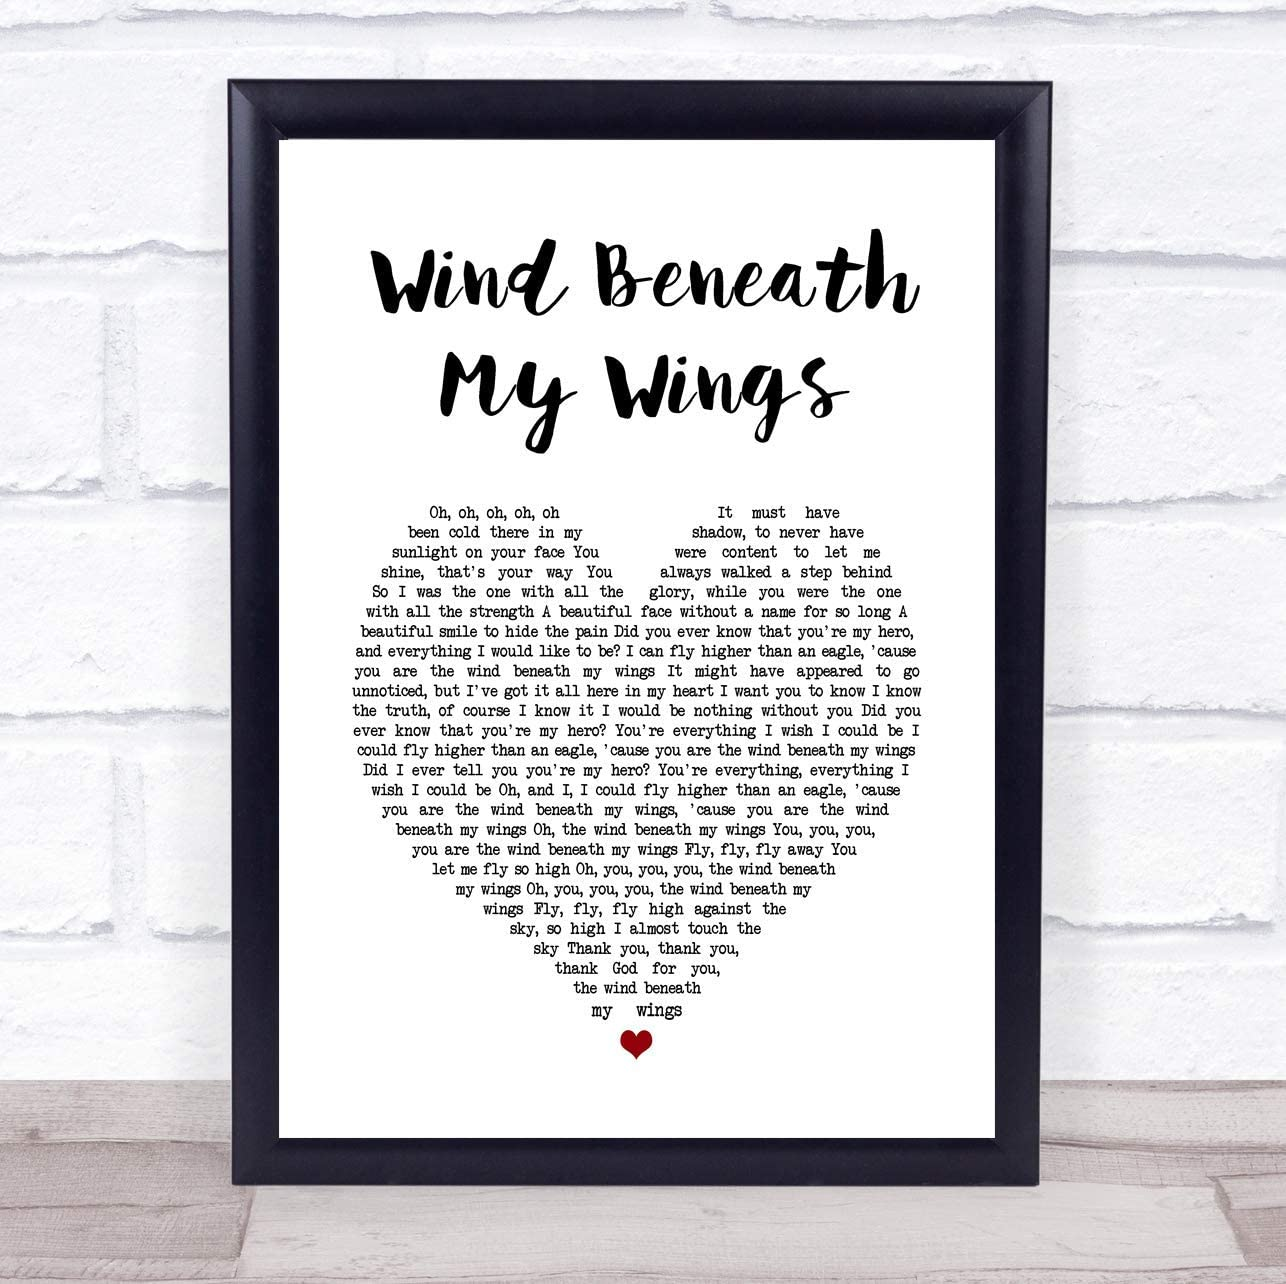 4 faionjaycho Wind Beneath My Wings Heart Song Lyric Quote Print Wall Art Home Decor Graduation Gift Framed 16X12in